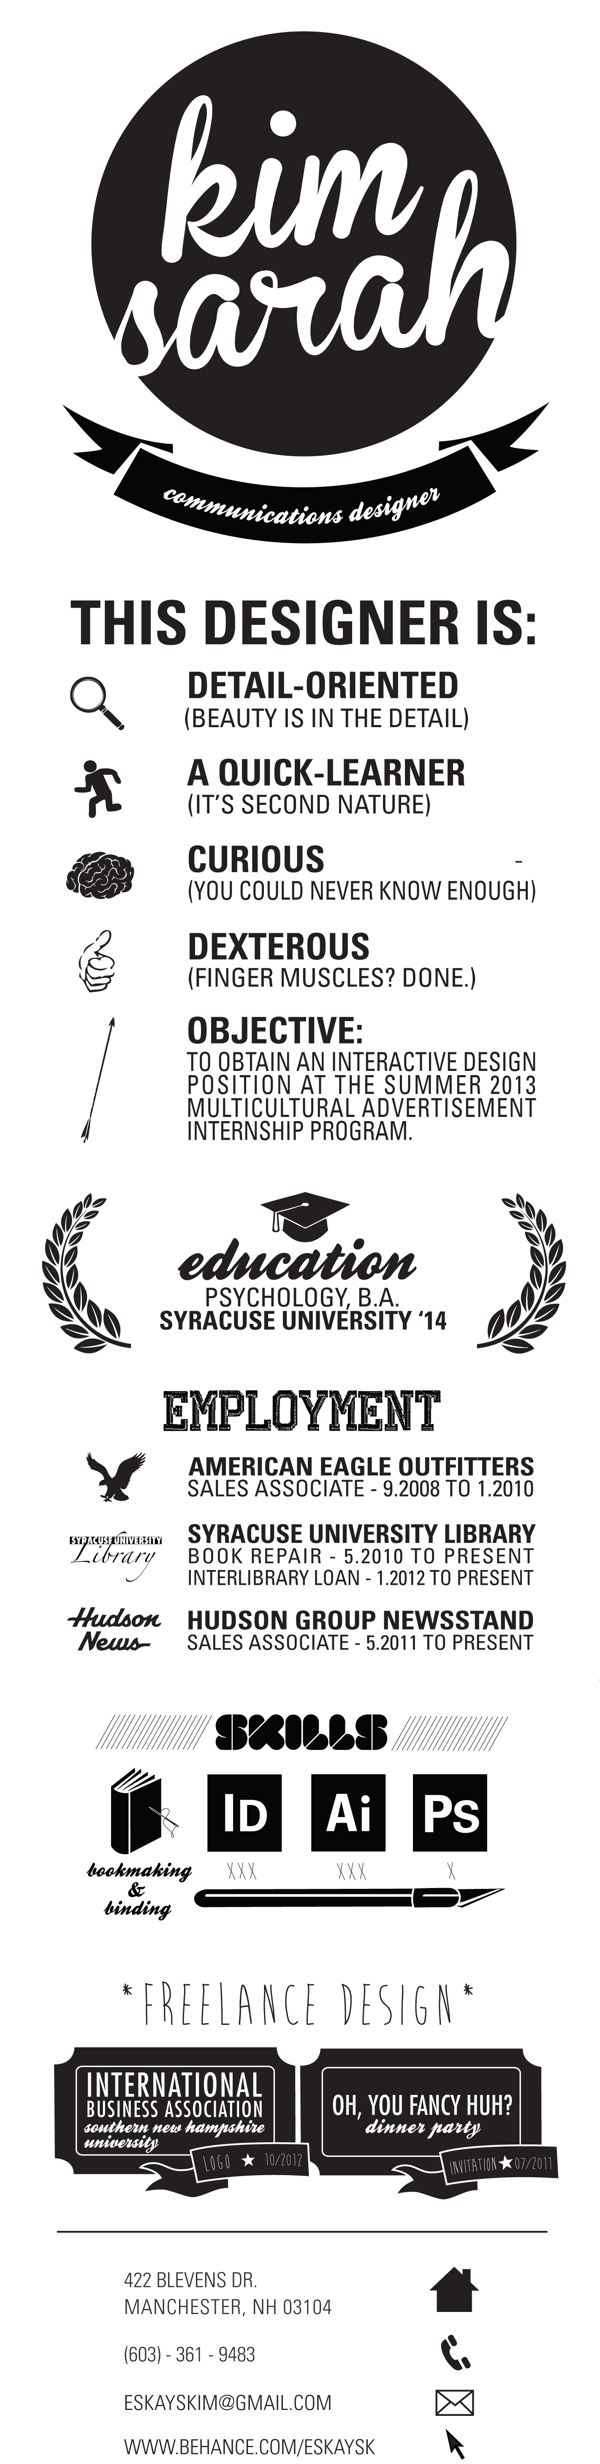 Opposenewapstandardsus  Scenic  Resume Ideas On Pinterest  Resume Resume Templates And  With Fascinating  Resume Ideas On Pinterest  Resume Resume Templates And Resume Styles With Lovely Template For A Resume Also What To Put On A Resume For Skills In Addition What Are Some Skills To Put On A Resume And Beginner Resume As Well As Traditional Resume Template Additionally Insurance Resume From Pinterestcom With Opposenewapstandardsus  Fascinating  Resume Ideas On Pinterest  Resume Resume Templates And  With Lovely  Resume Ideas On Pinterest  Resume Resume Templates And Resume Styles And Scenic Template For A Resume Also What To Put On A Resume For Skills In Addition What Are Some Skills To Put On A Resume From Pinterestcom